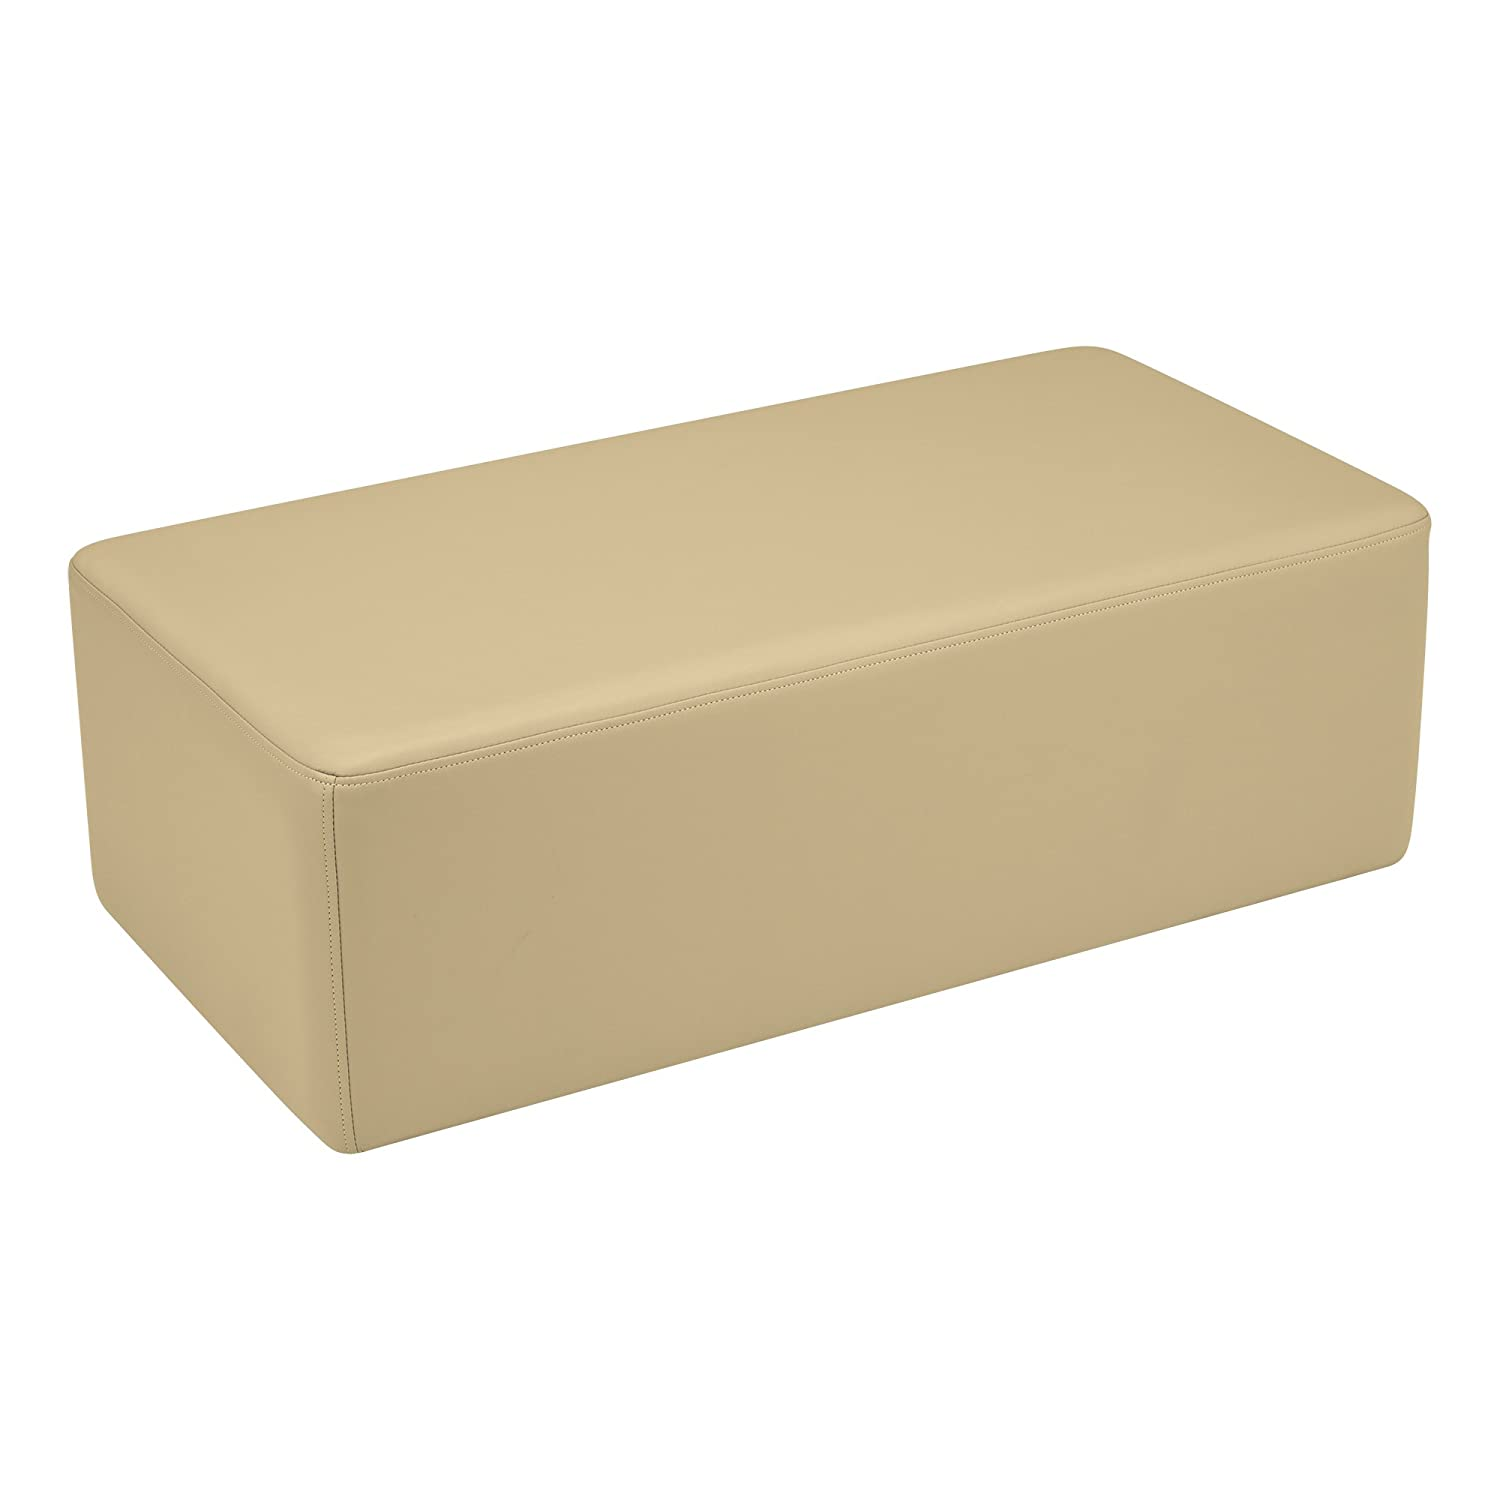 Sand 12  Sprogs Vinyl Soft Seating Rectangle Stool Bench, 18  H, Sand, SPG-1011SD-A